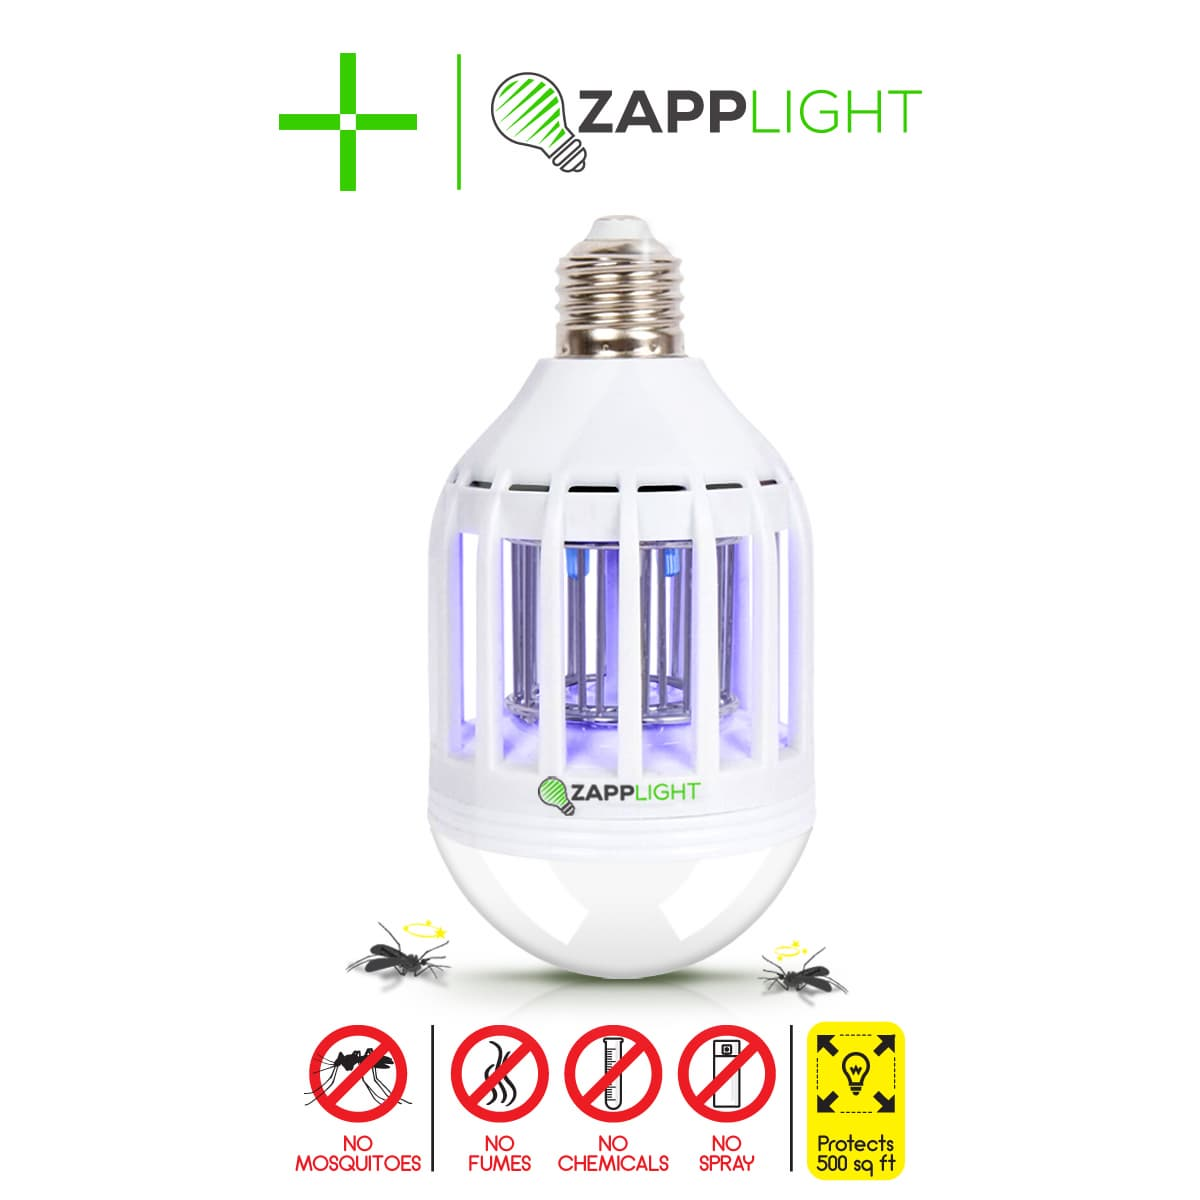 Zapplight 2in1 Led Bulb Bulbs Zapper Mosquito Bug Killer From Hnsbridge Co Ltd South Korea